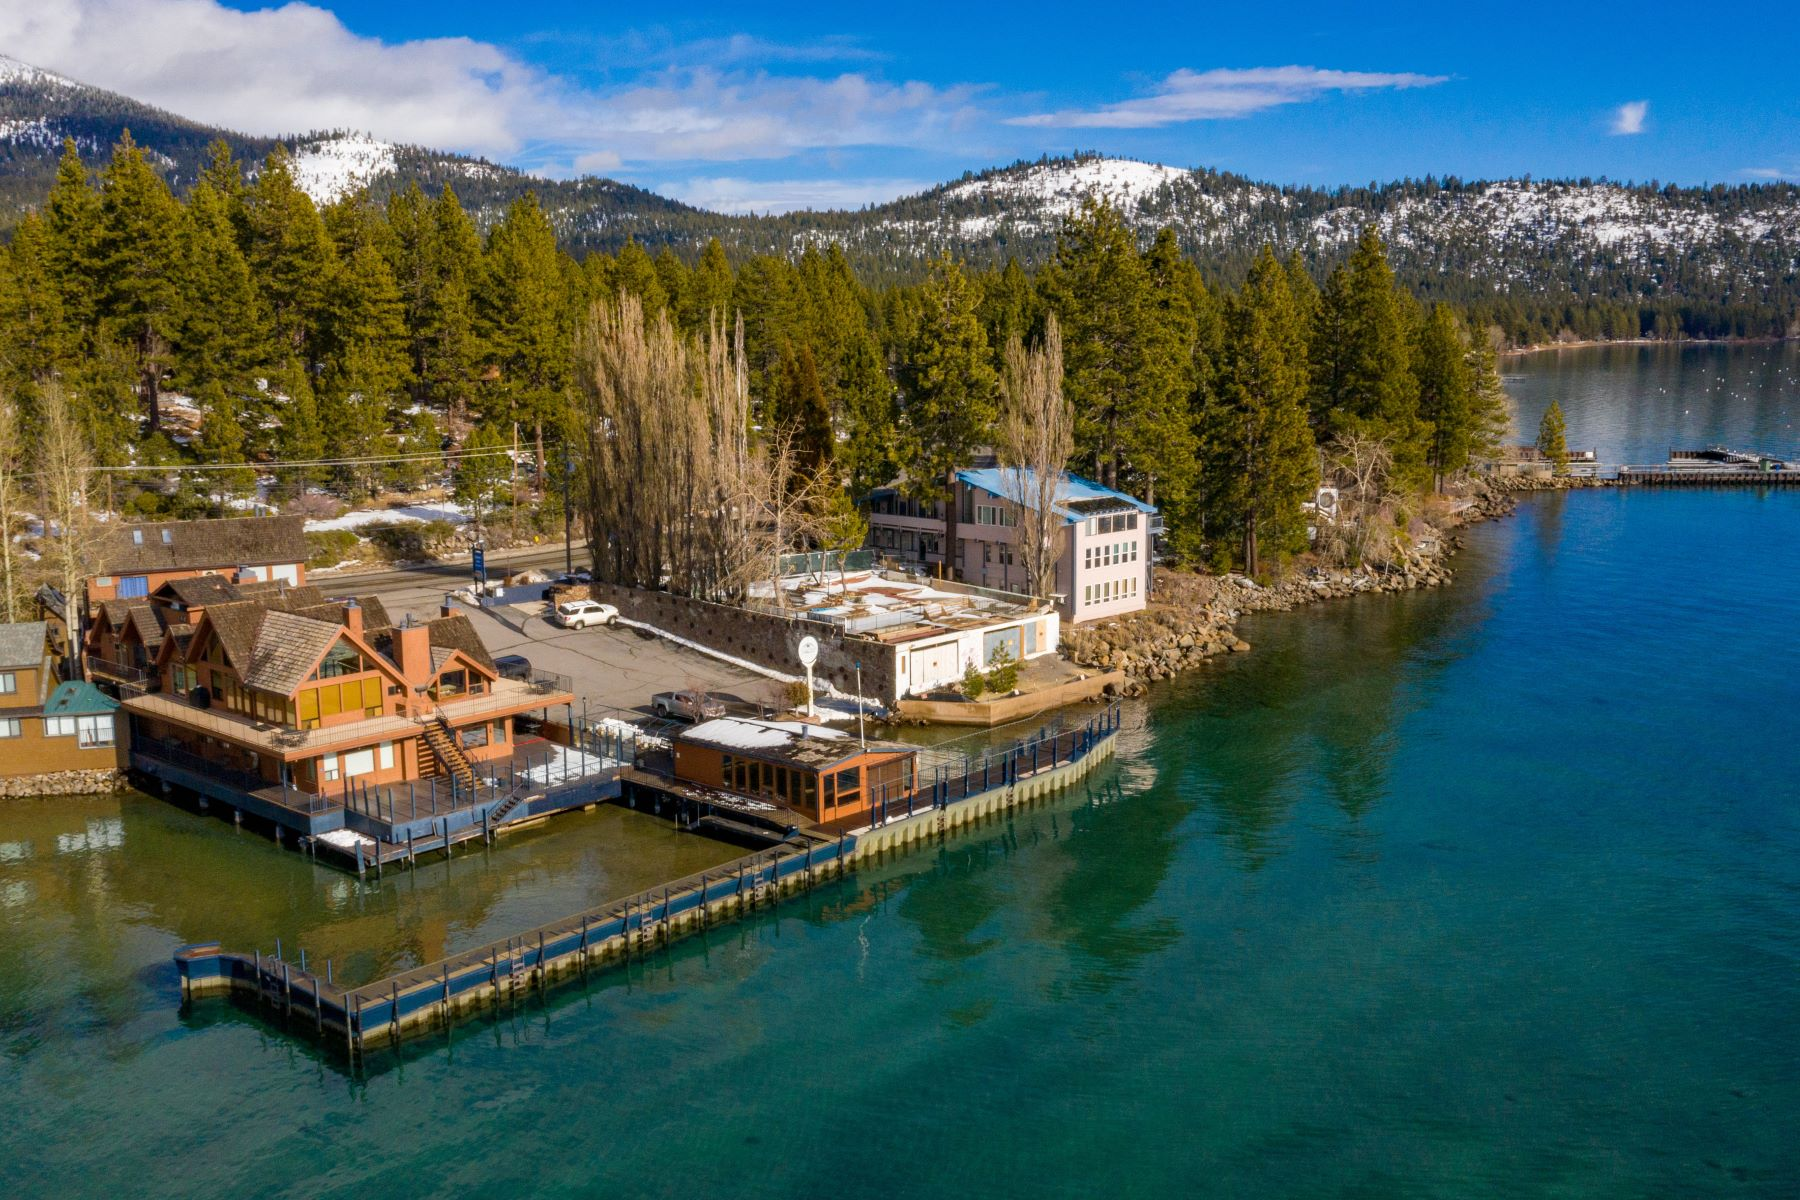 Property 为 销售 在 7238 N Lake Blvd, Tahoe Vista, CA 96148 7238 N Lake Boulevard 塔霍湖, 加利福尼亚州 96148 美国